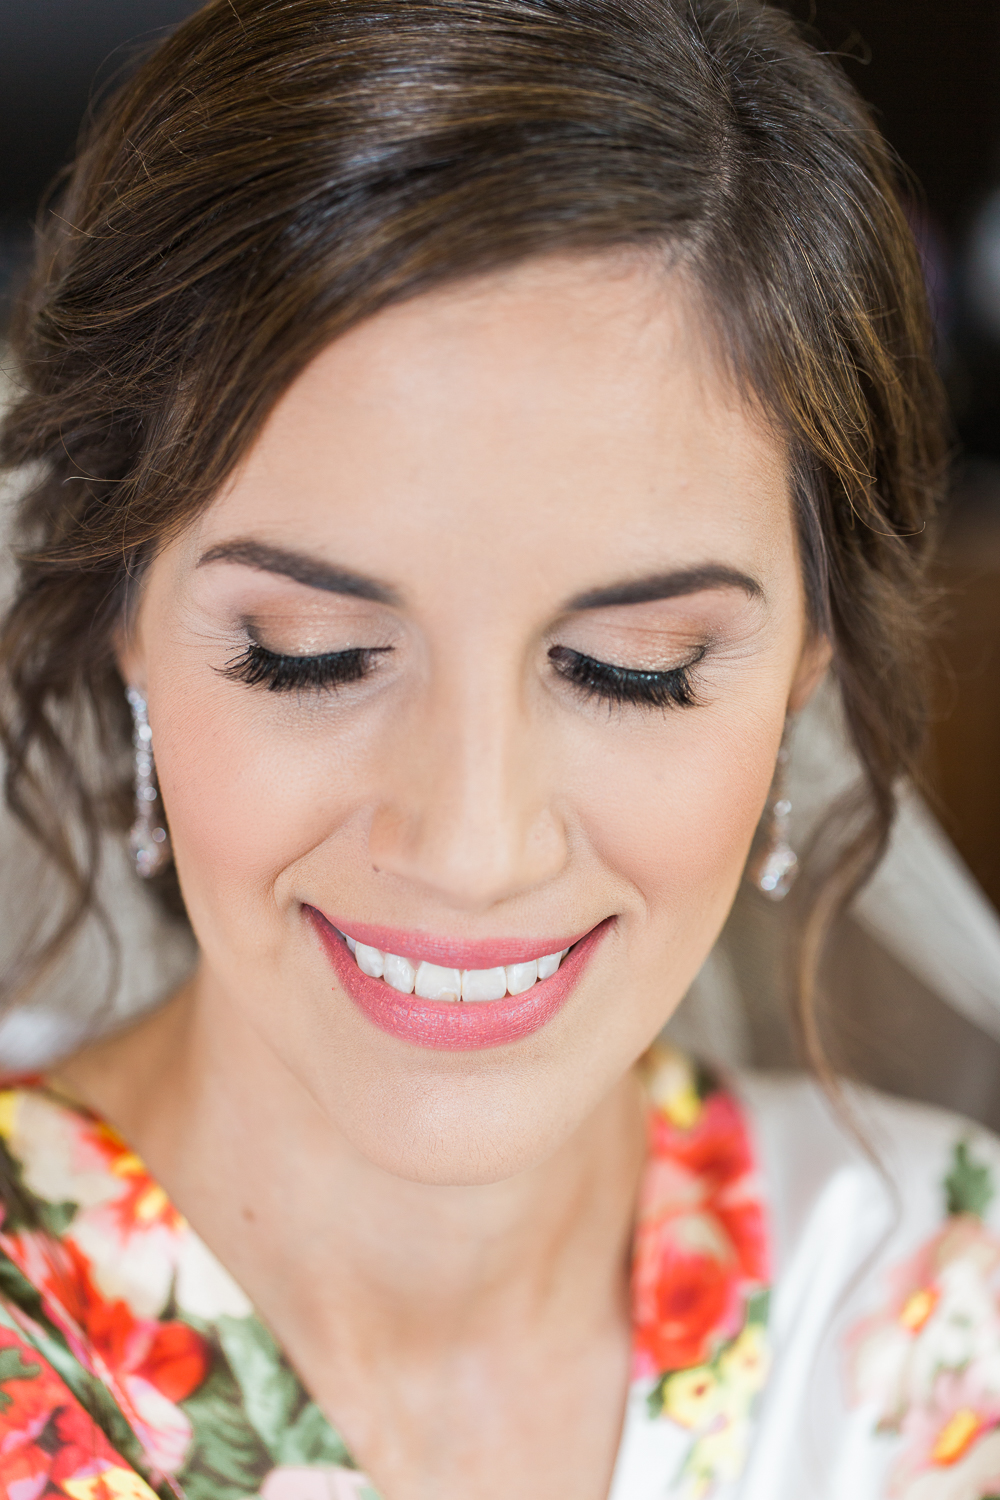 Bride's makeup by Sarina Durden